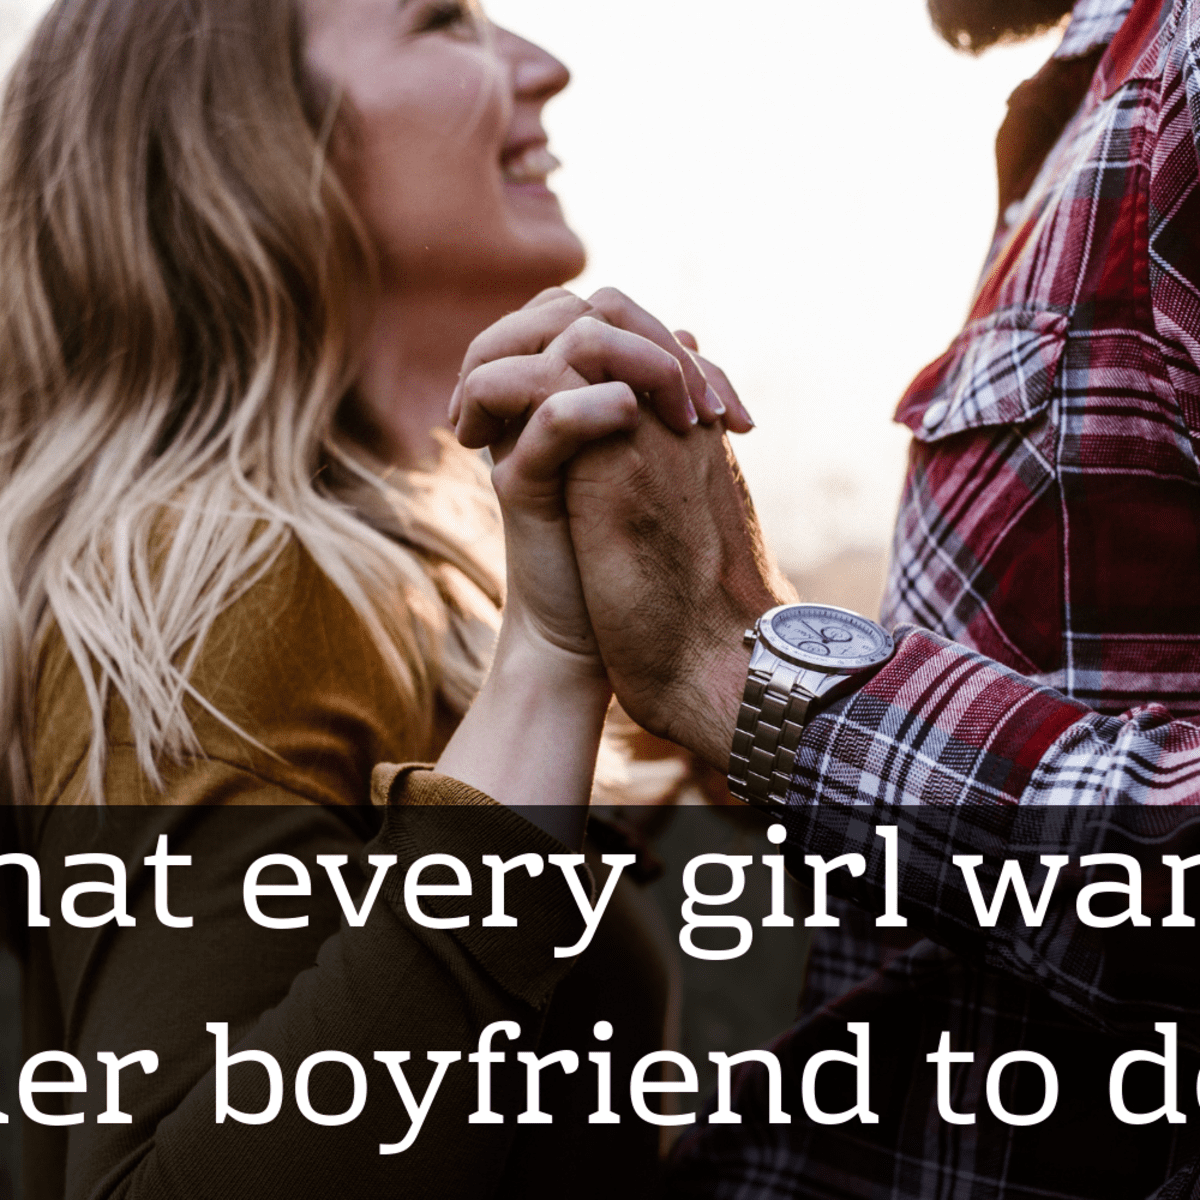 What do you want in a boyfriend